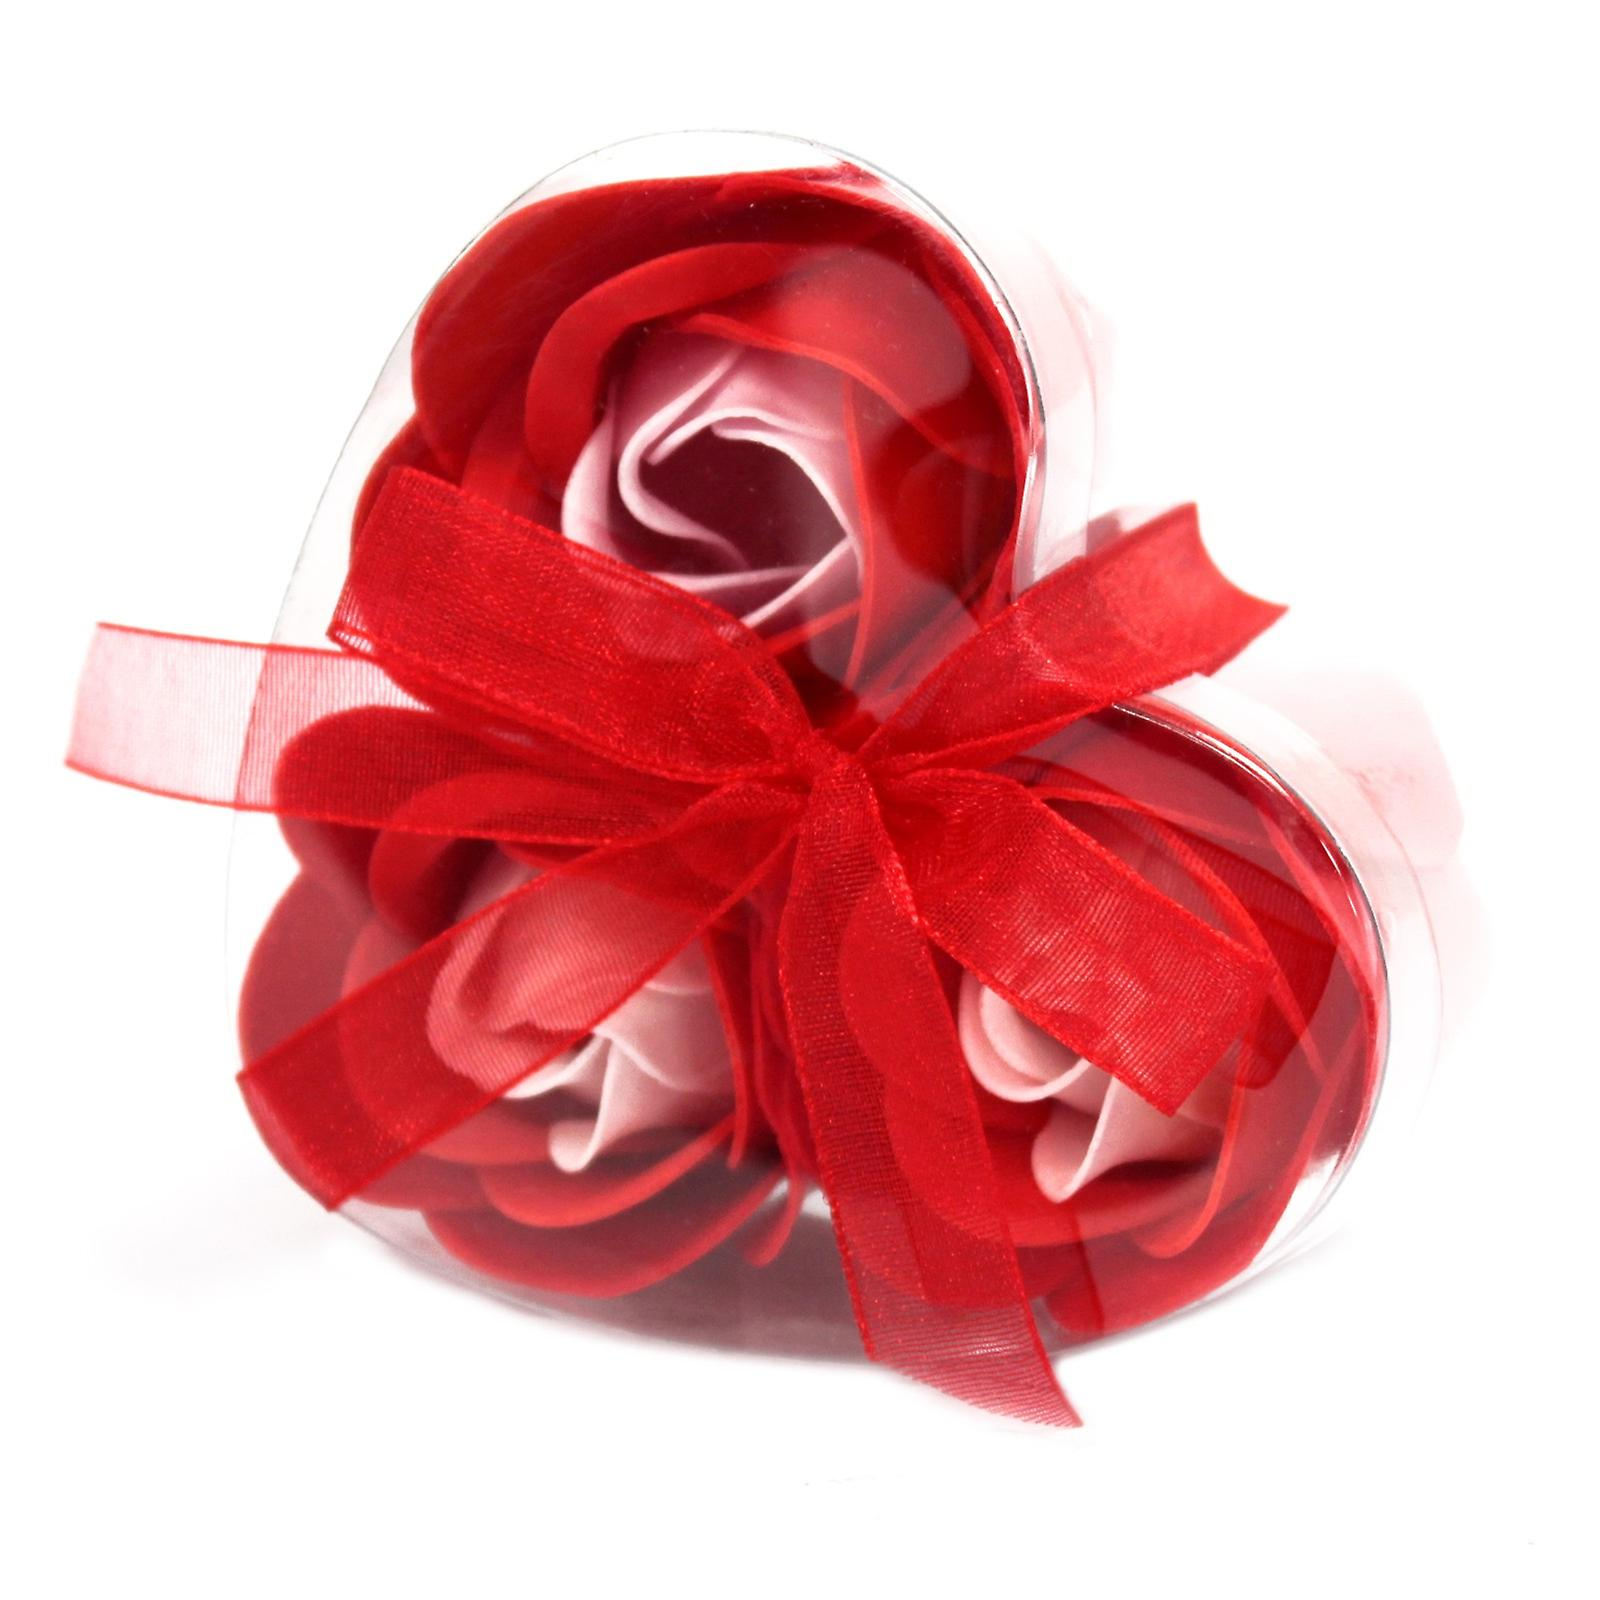 Set of 3 Soap Flowers in Heart Box - Red Roses